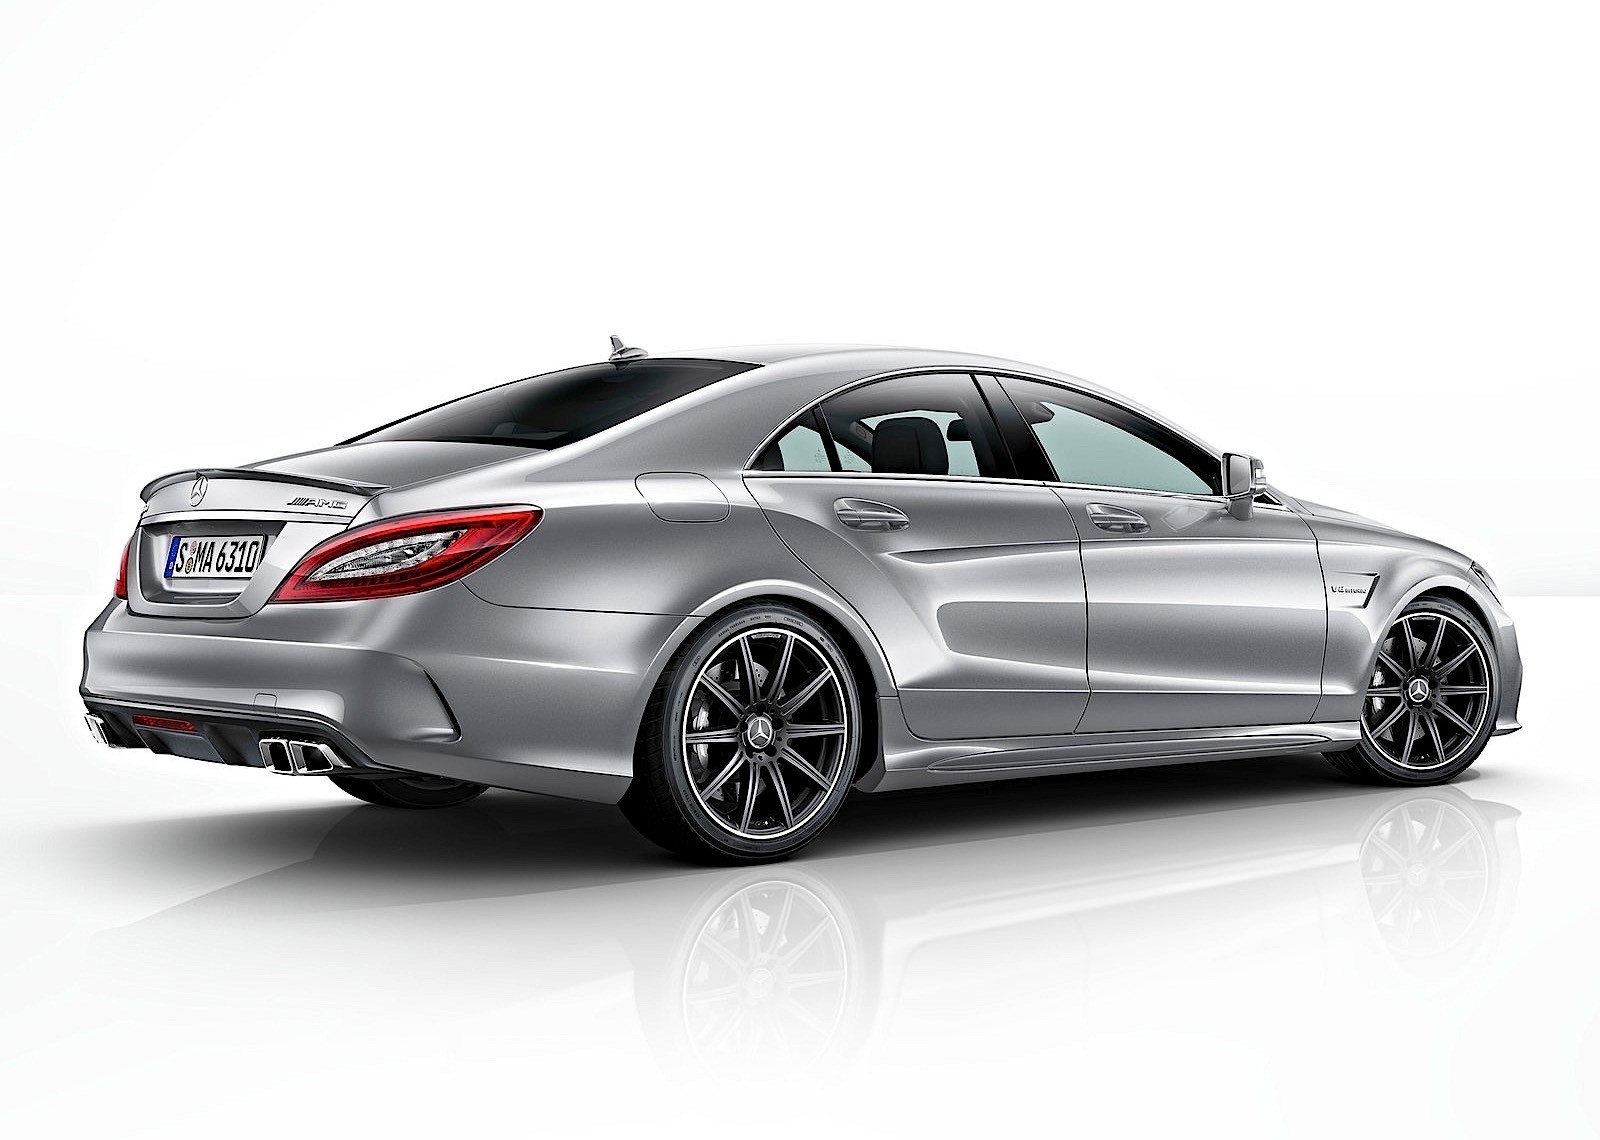 mercedes benz cls 63 amg c218 specs 2014 2015 2016. Black Bedroom Furniture Sets. Home Design Ideas